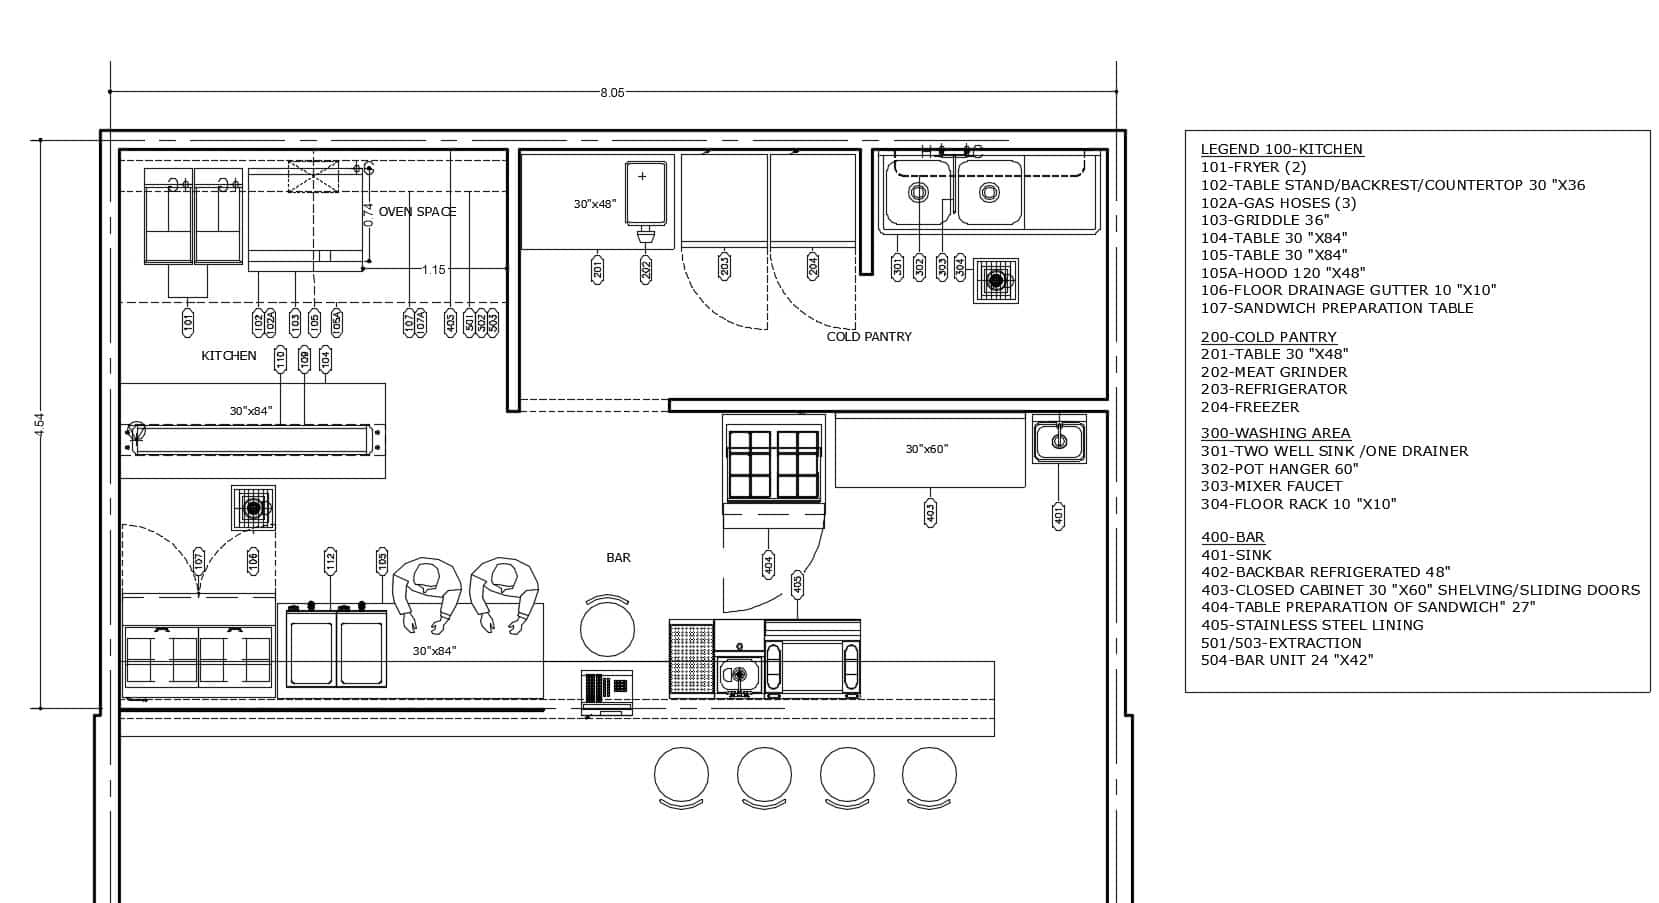 free downloadable layout with equipment and dimensions of Displayed Kitchen With Front Bar in 2D format, kitchen with cooking equipment, exhaust hood, bar area with specified equipment,